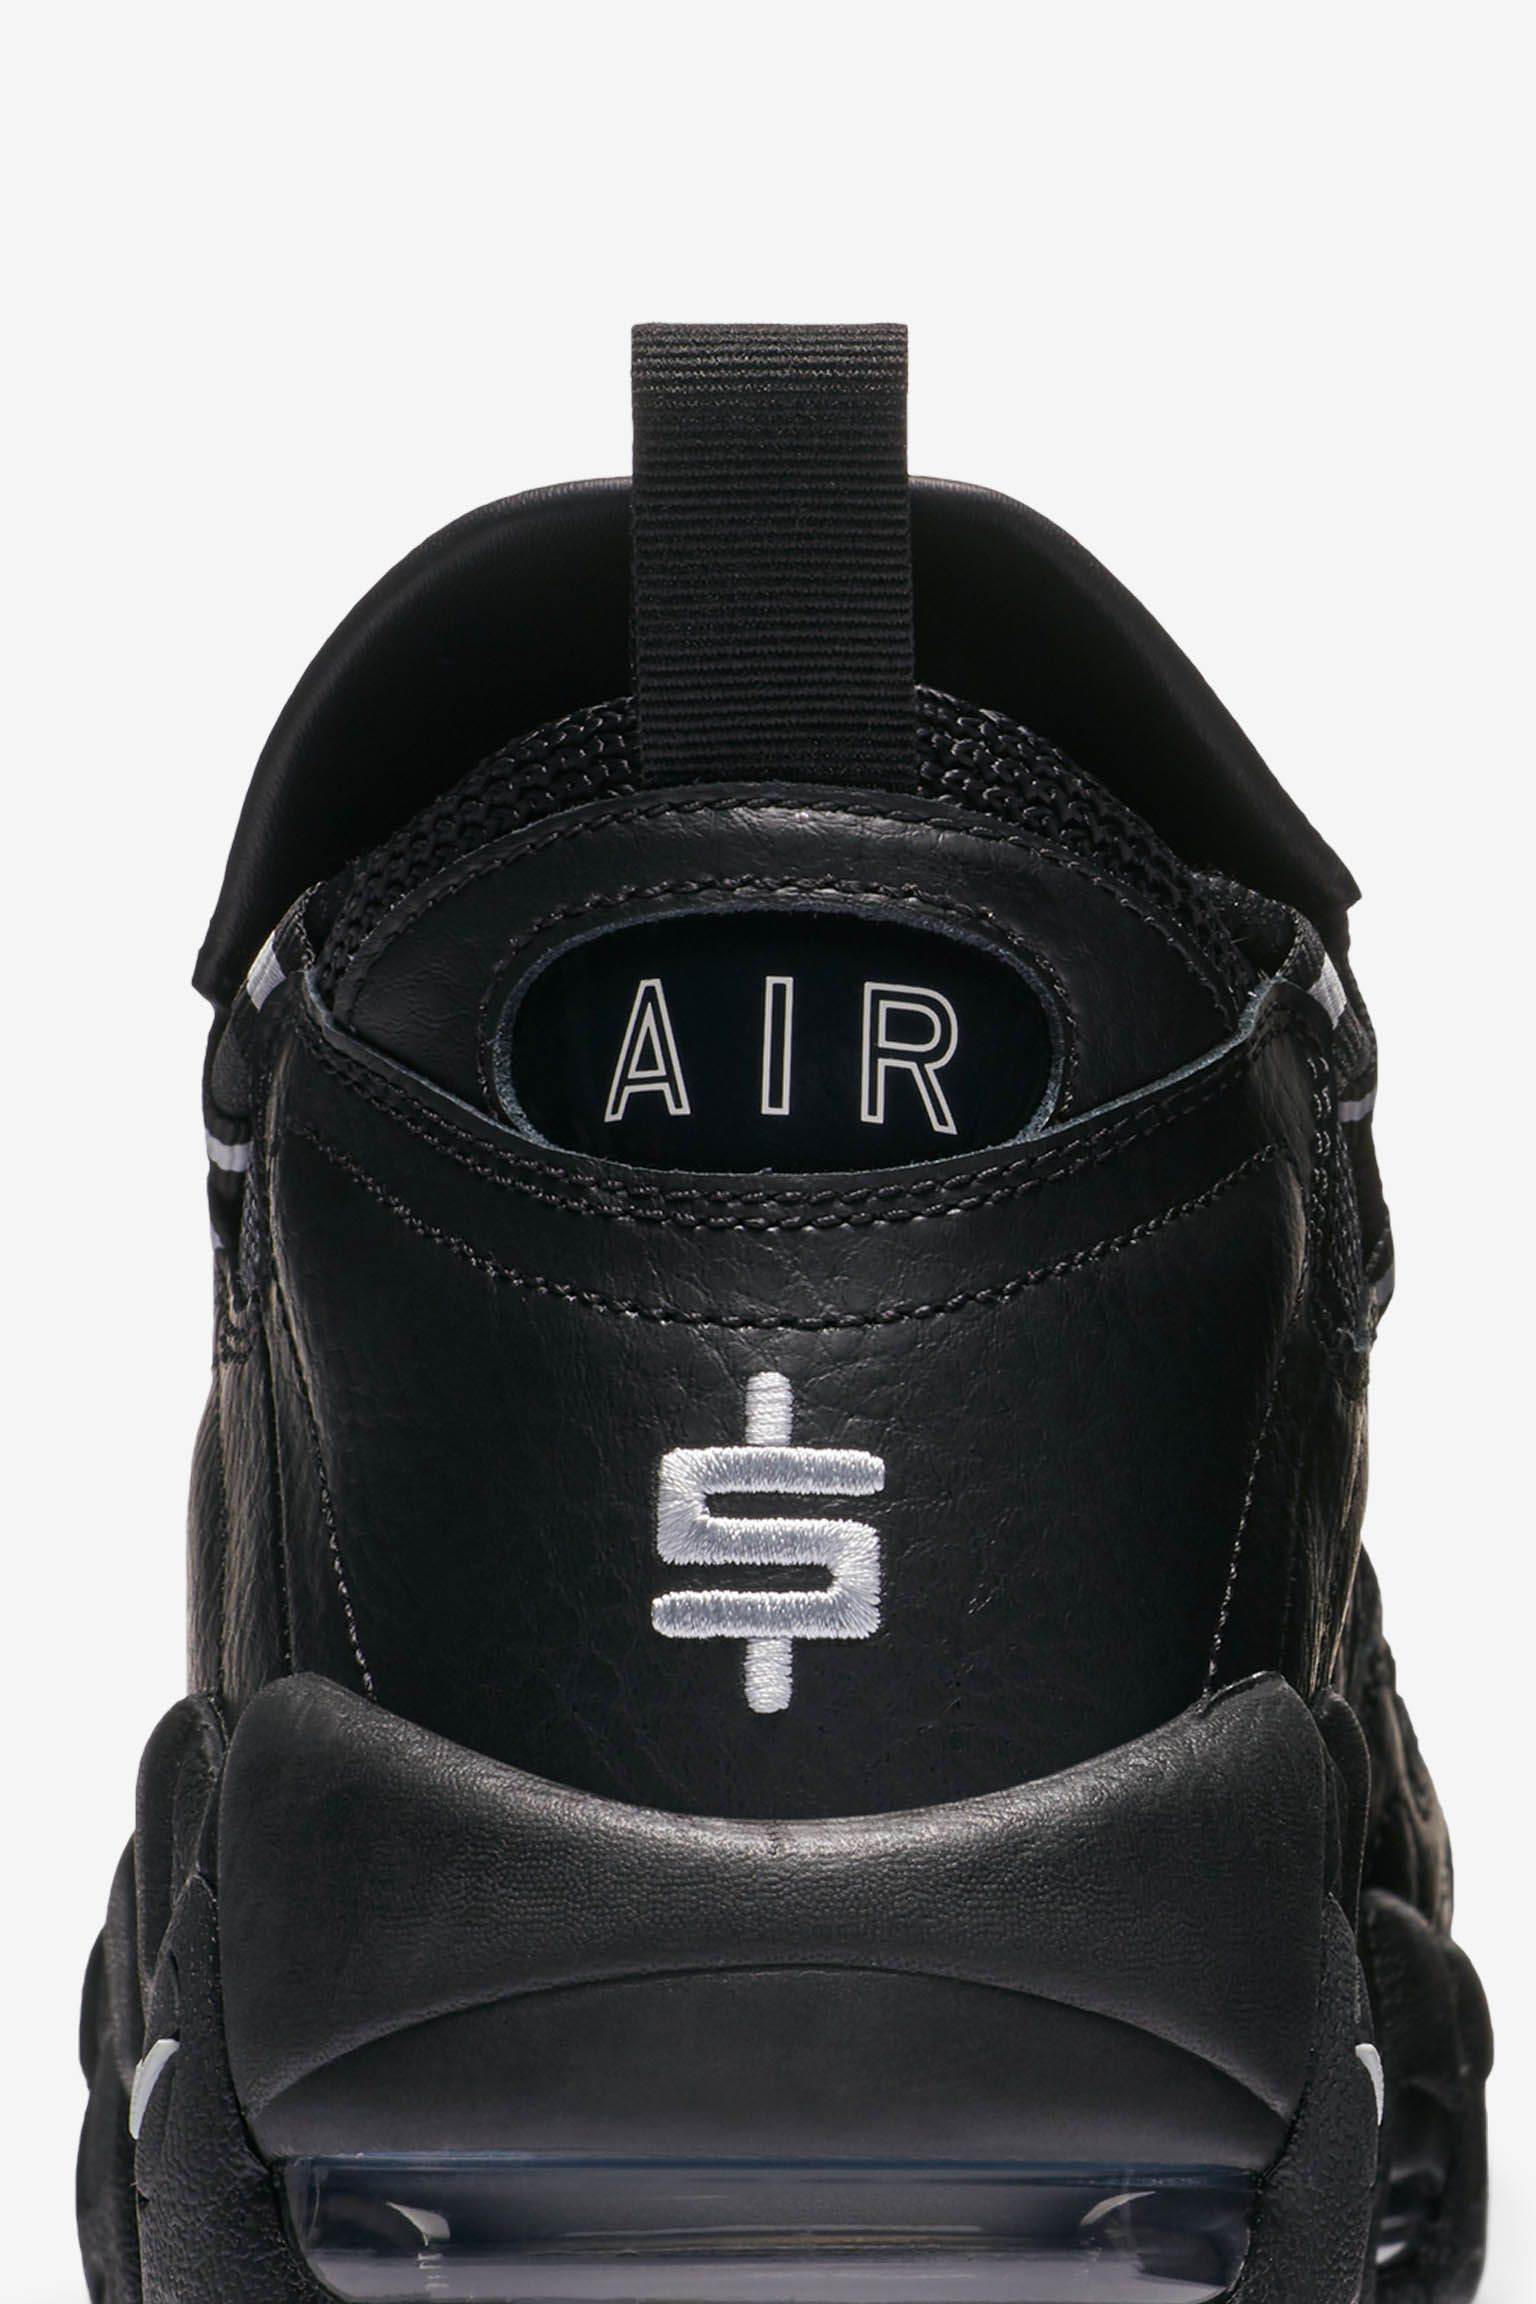 Nike Air More Money 'Black & Pure Platinum' Release Date